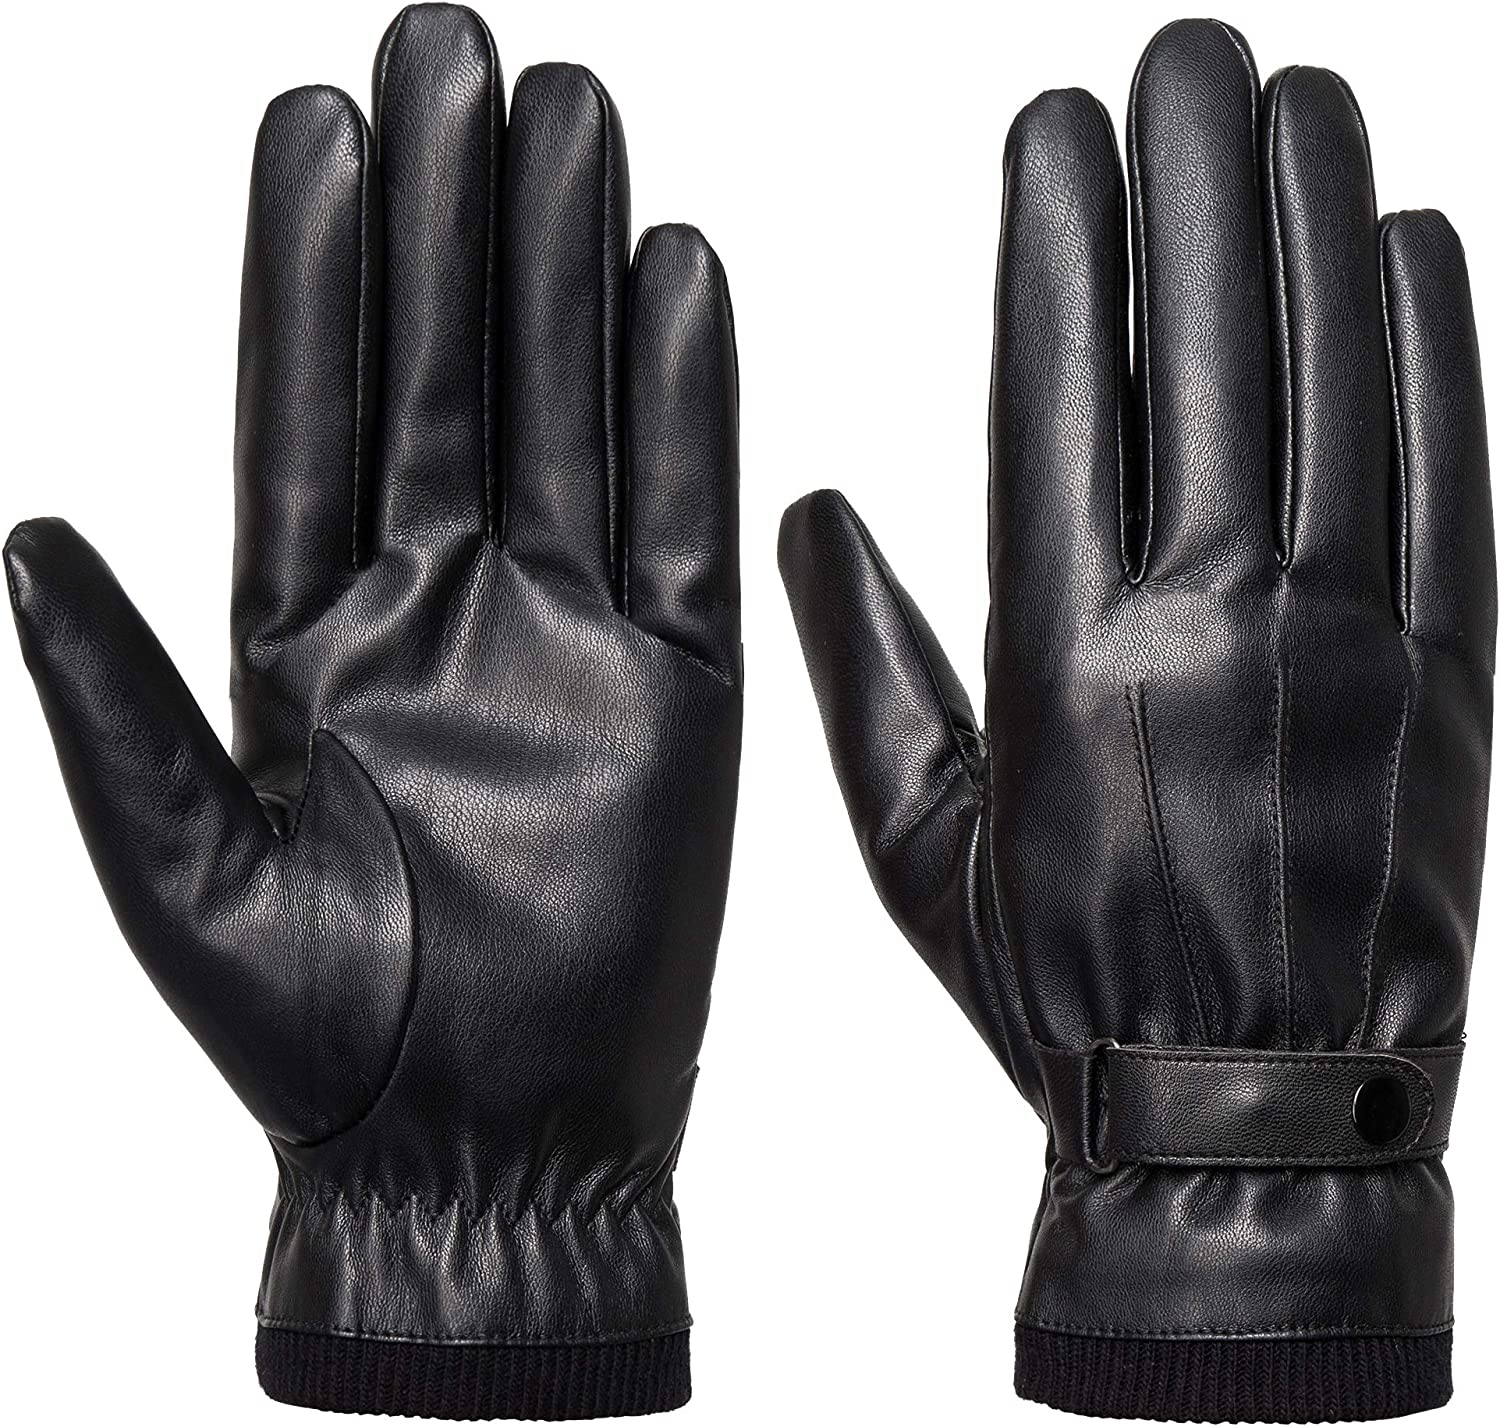 SANKUU Men's Winter Black Gloves Leather Touchscreen Snap Closure Cycling Glove Outdoor Riding Warm Waterproof Gloves